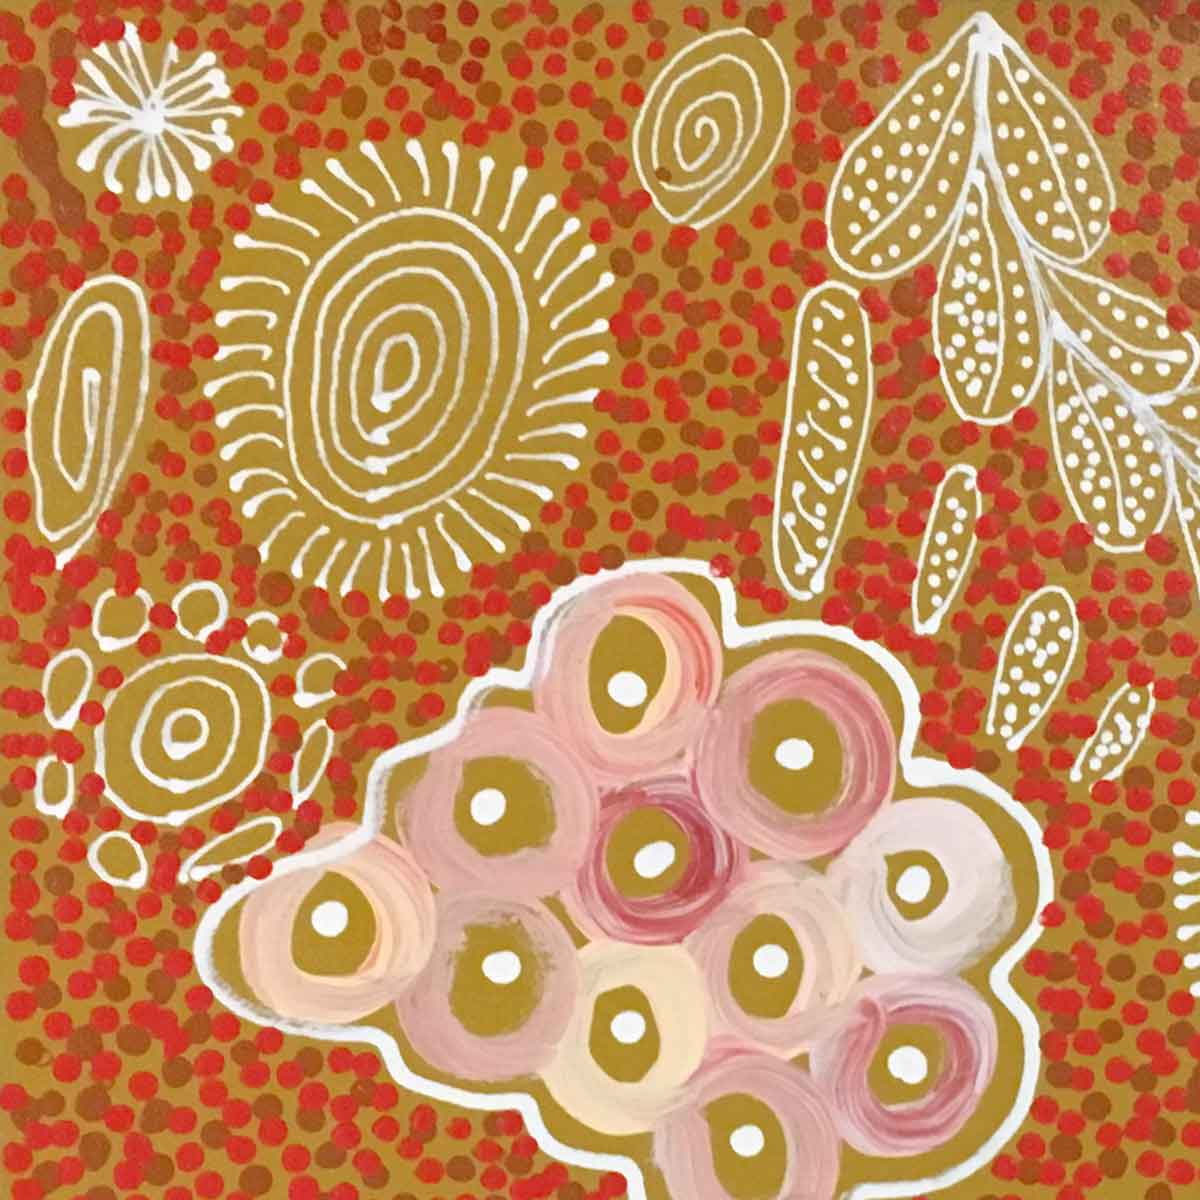 Pencil Yam by Janet golder Kngwarreye | Stretched. Australian Aboriginal Art.